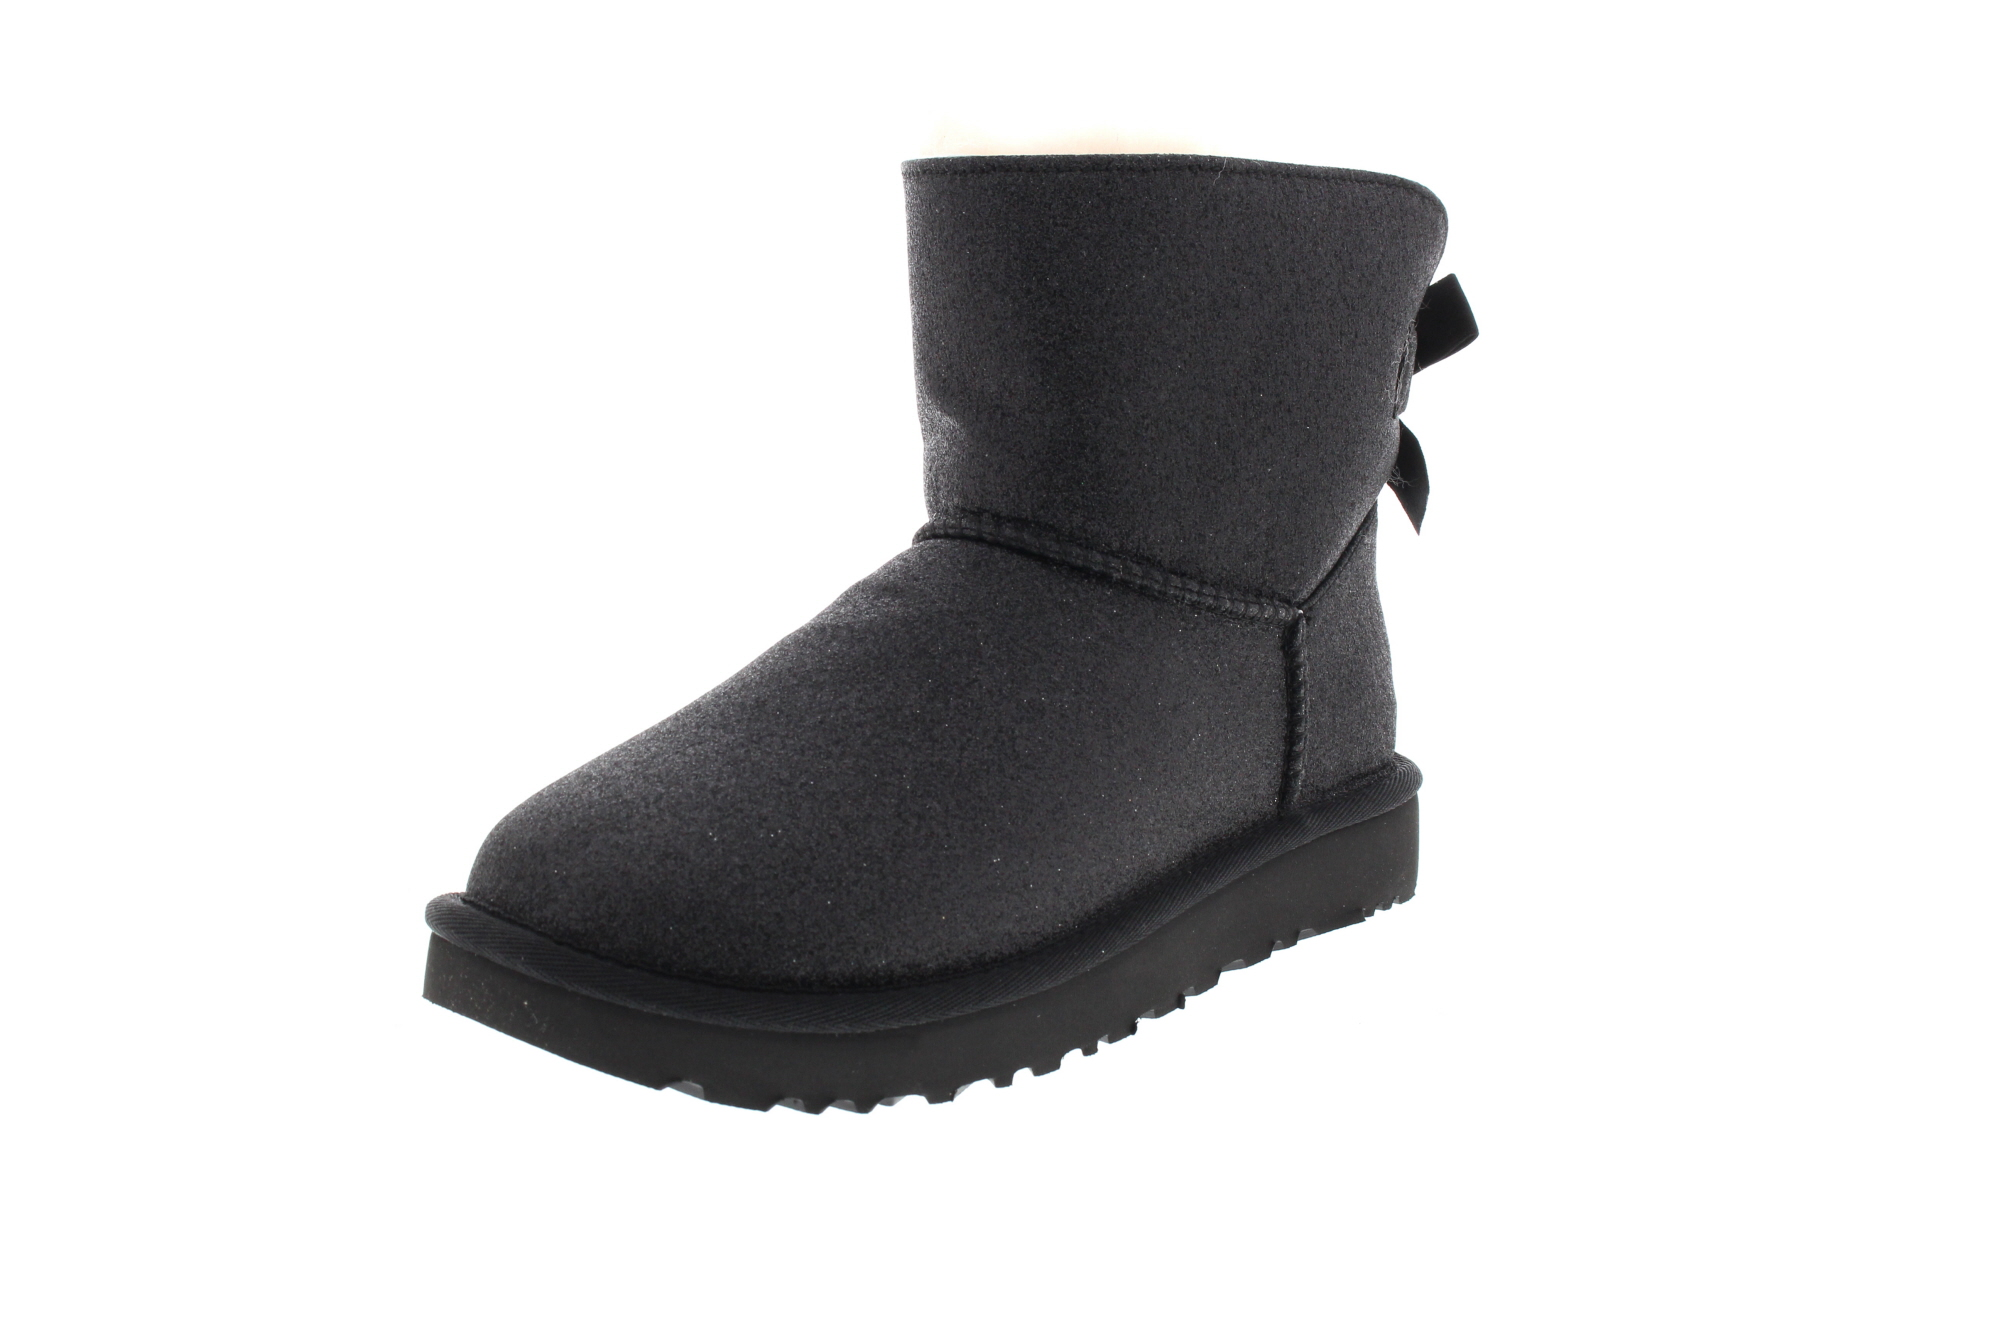 UGG Damenschuhe Booties MINI BAILEY BOW SPARKLE black0-6684